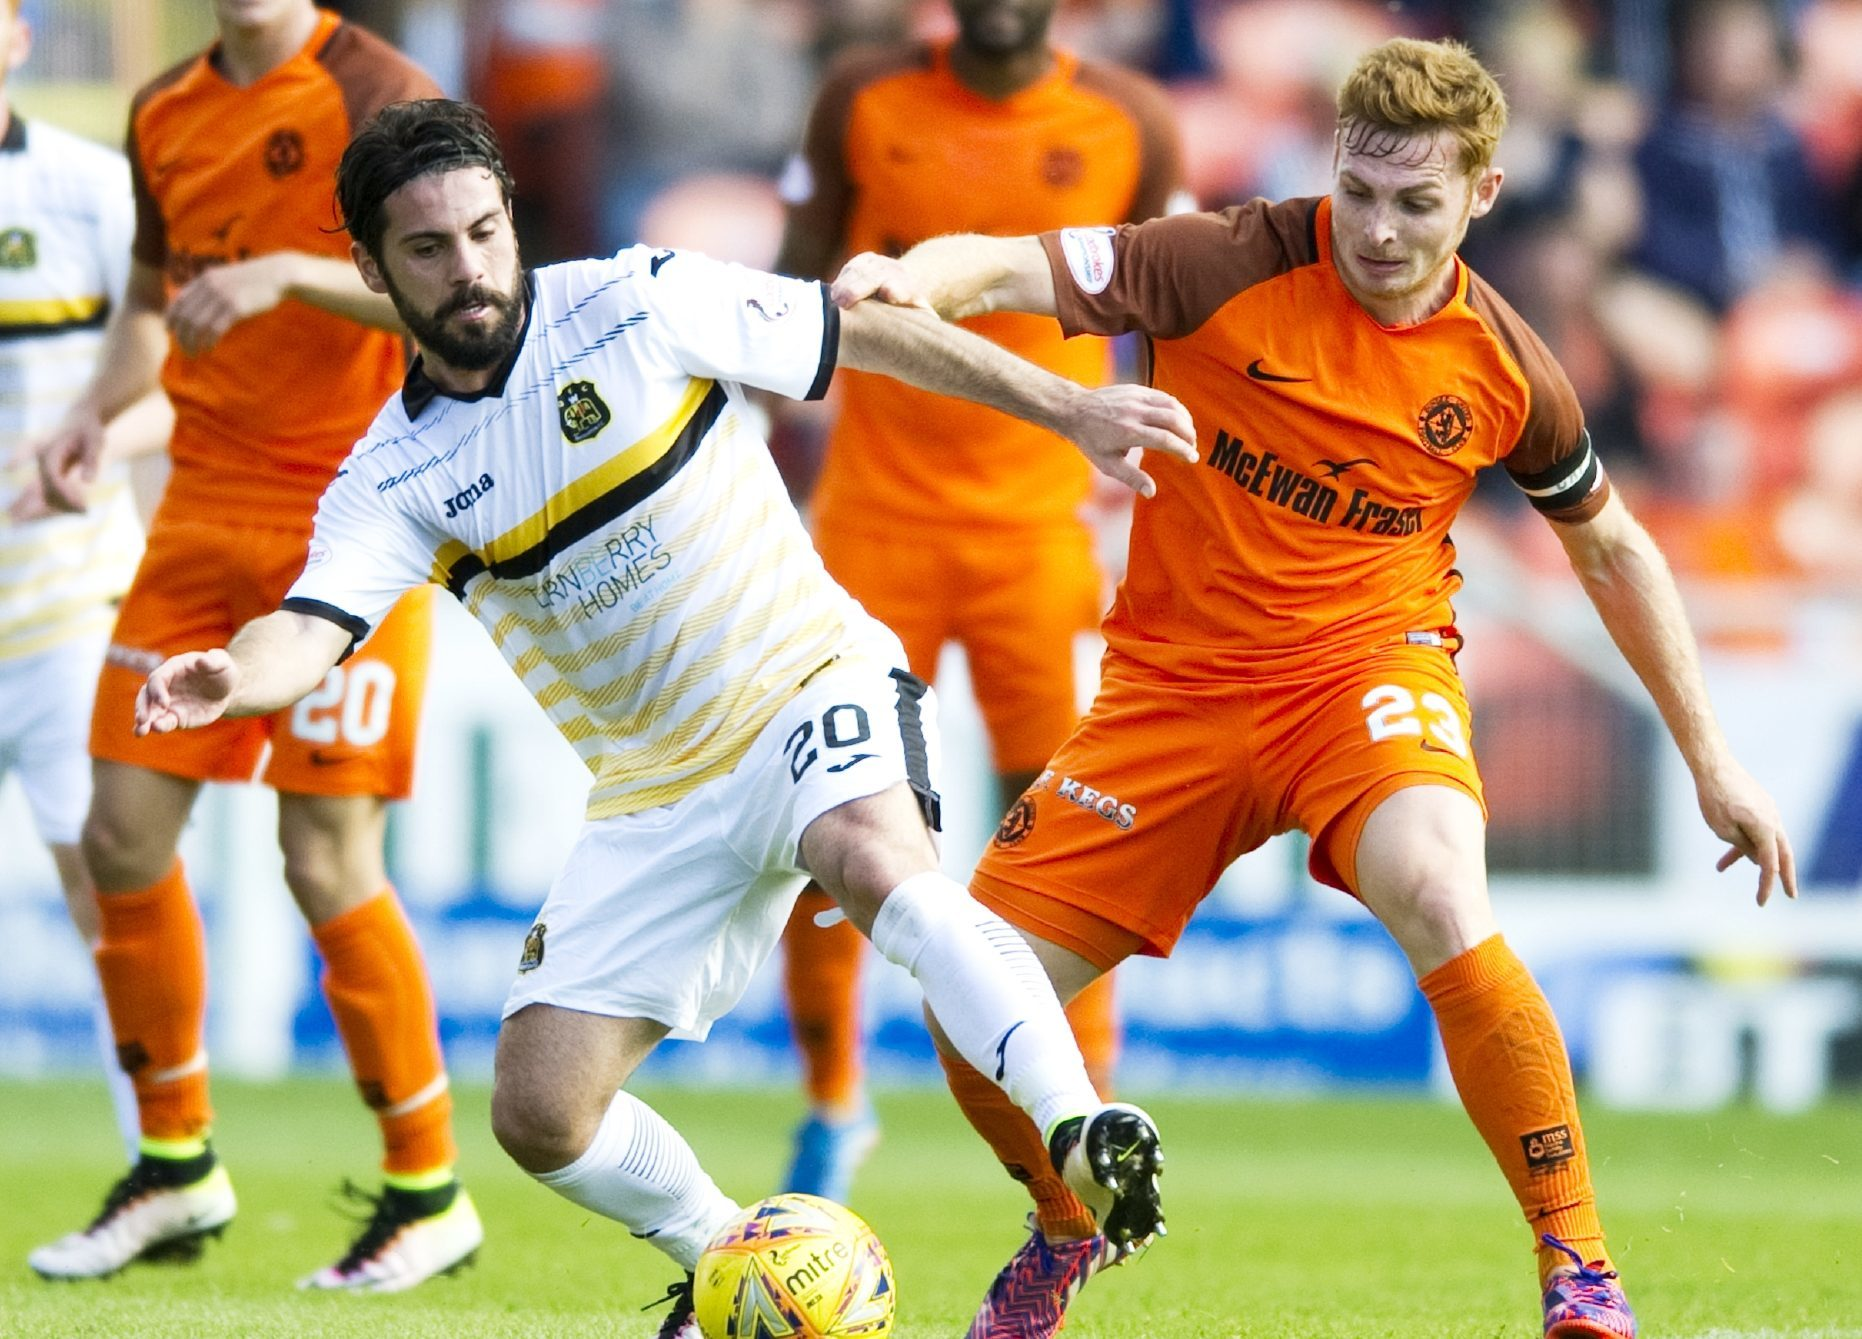 Dimitris Froxylias and Fraser Fyvie battle for possession.